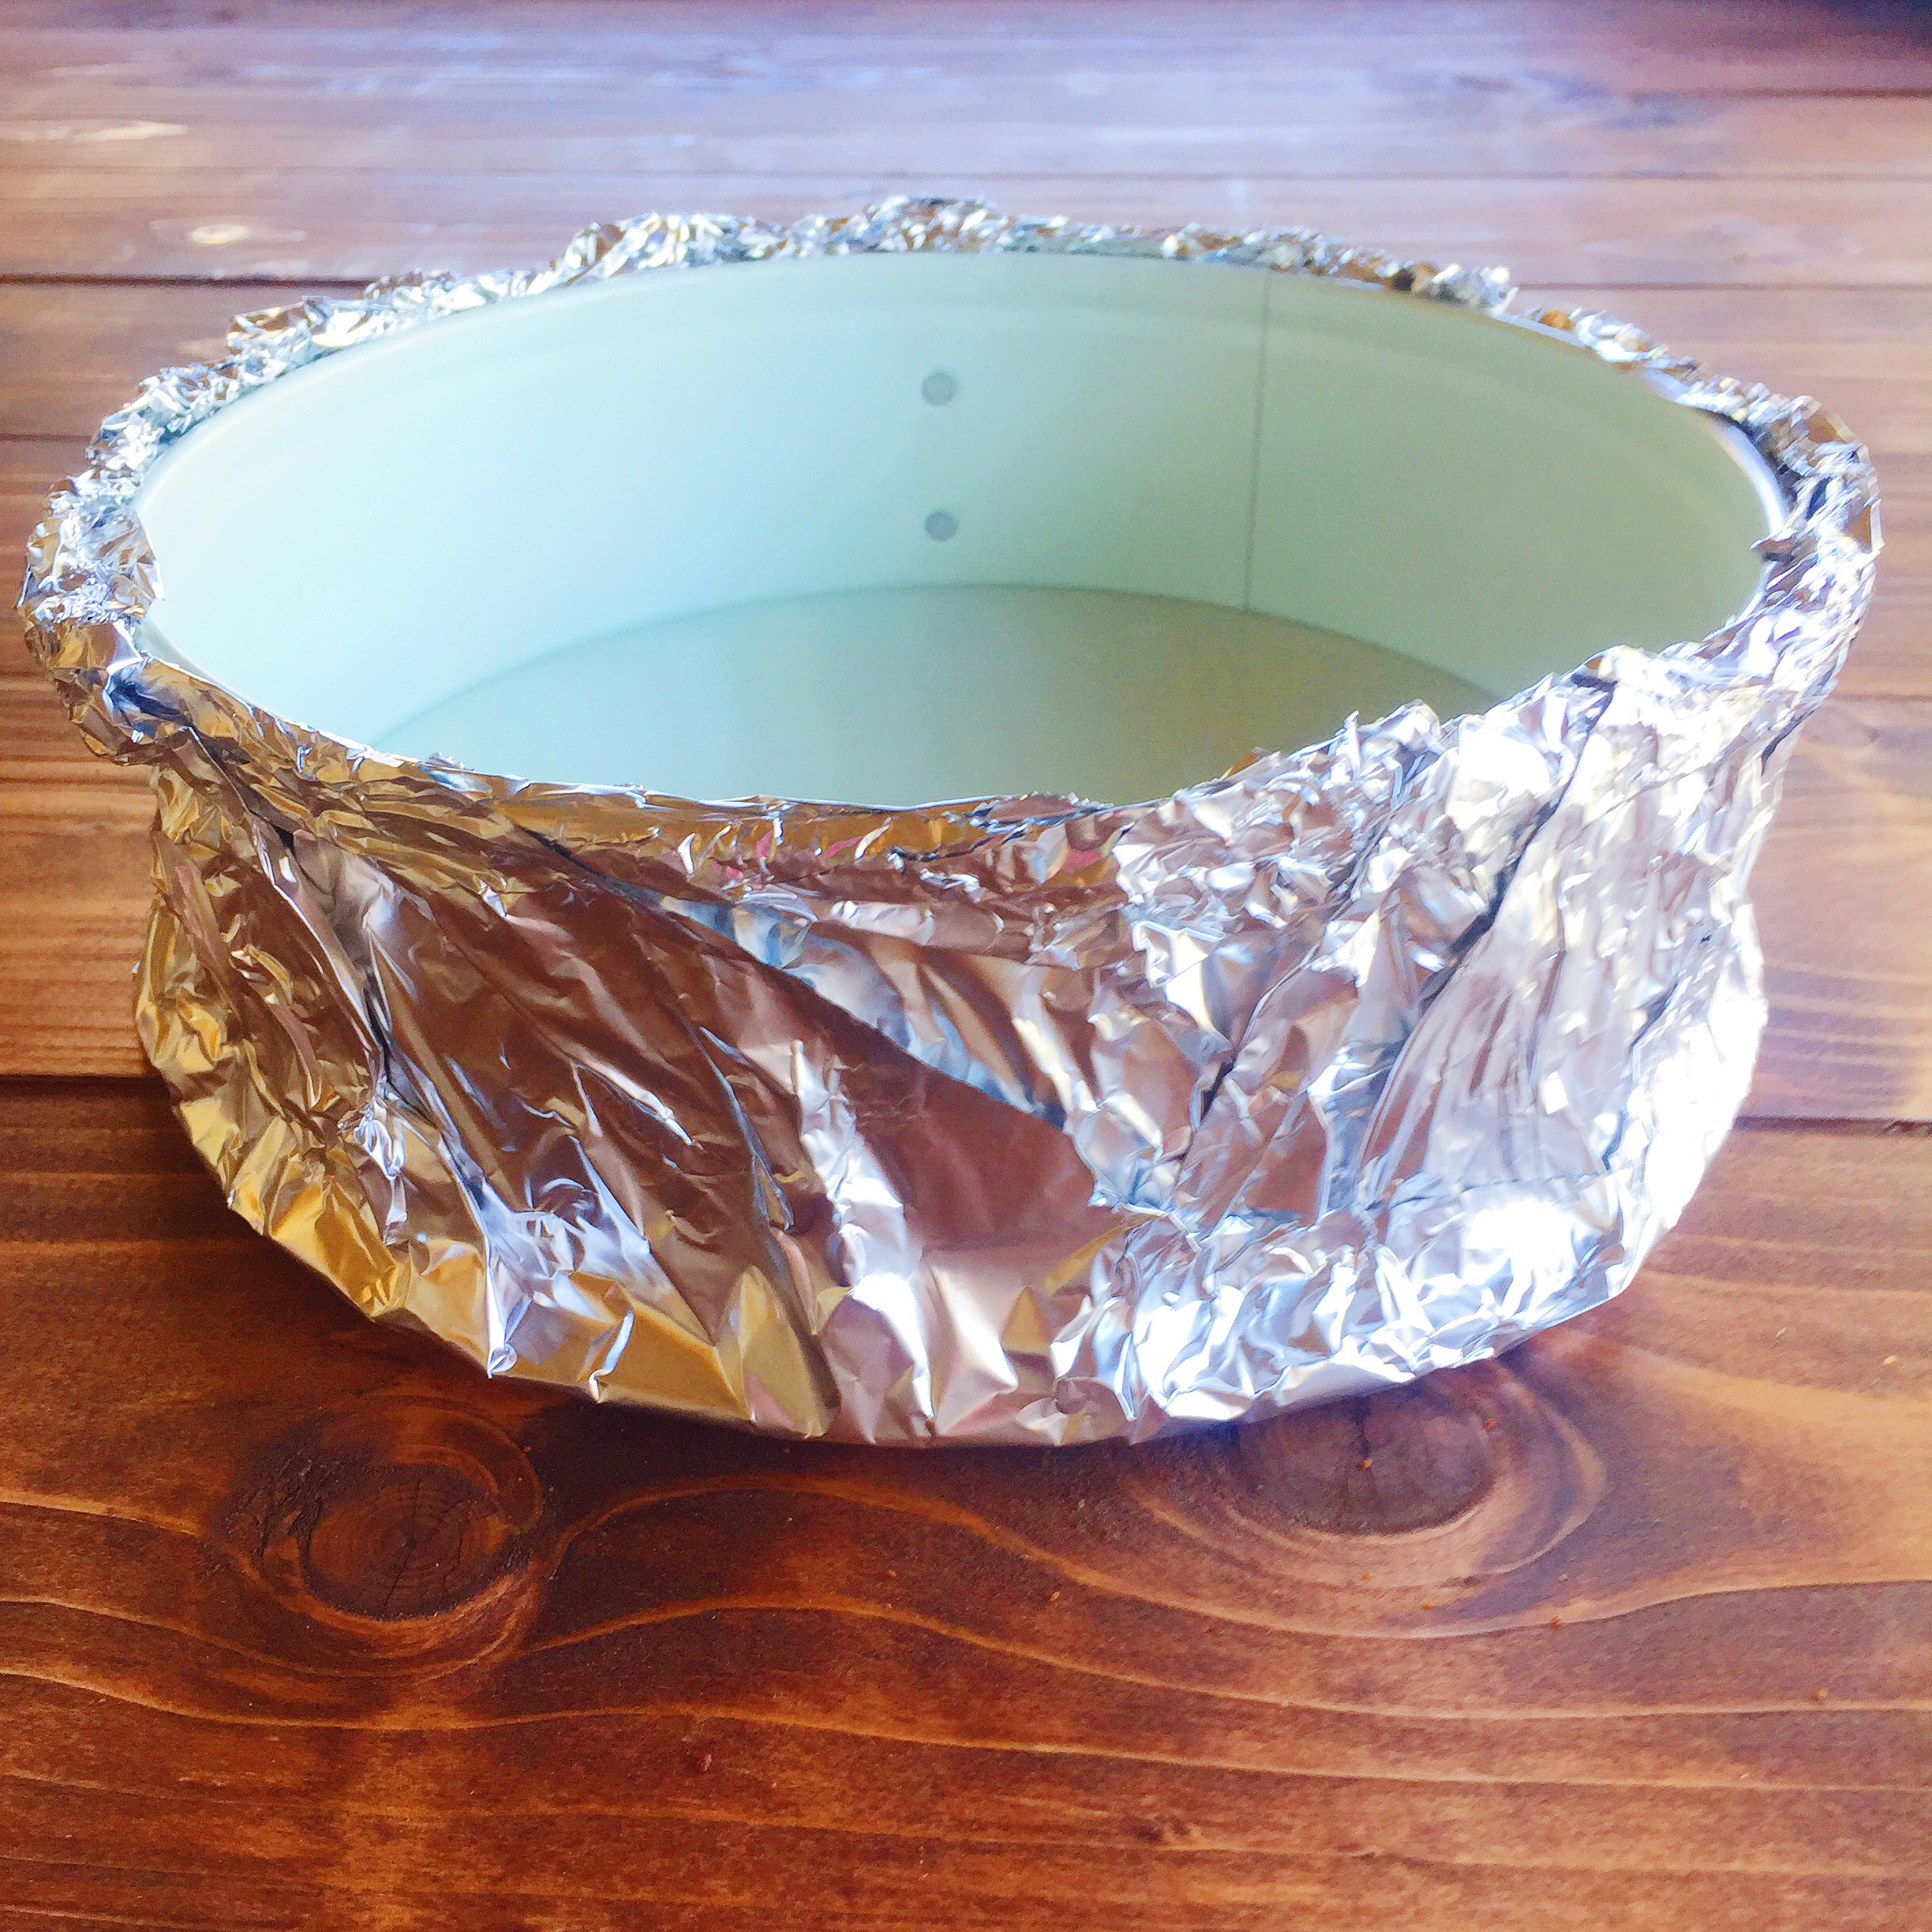 Wrap your spring form pan in several layers of foil.